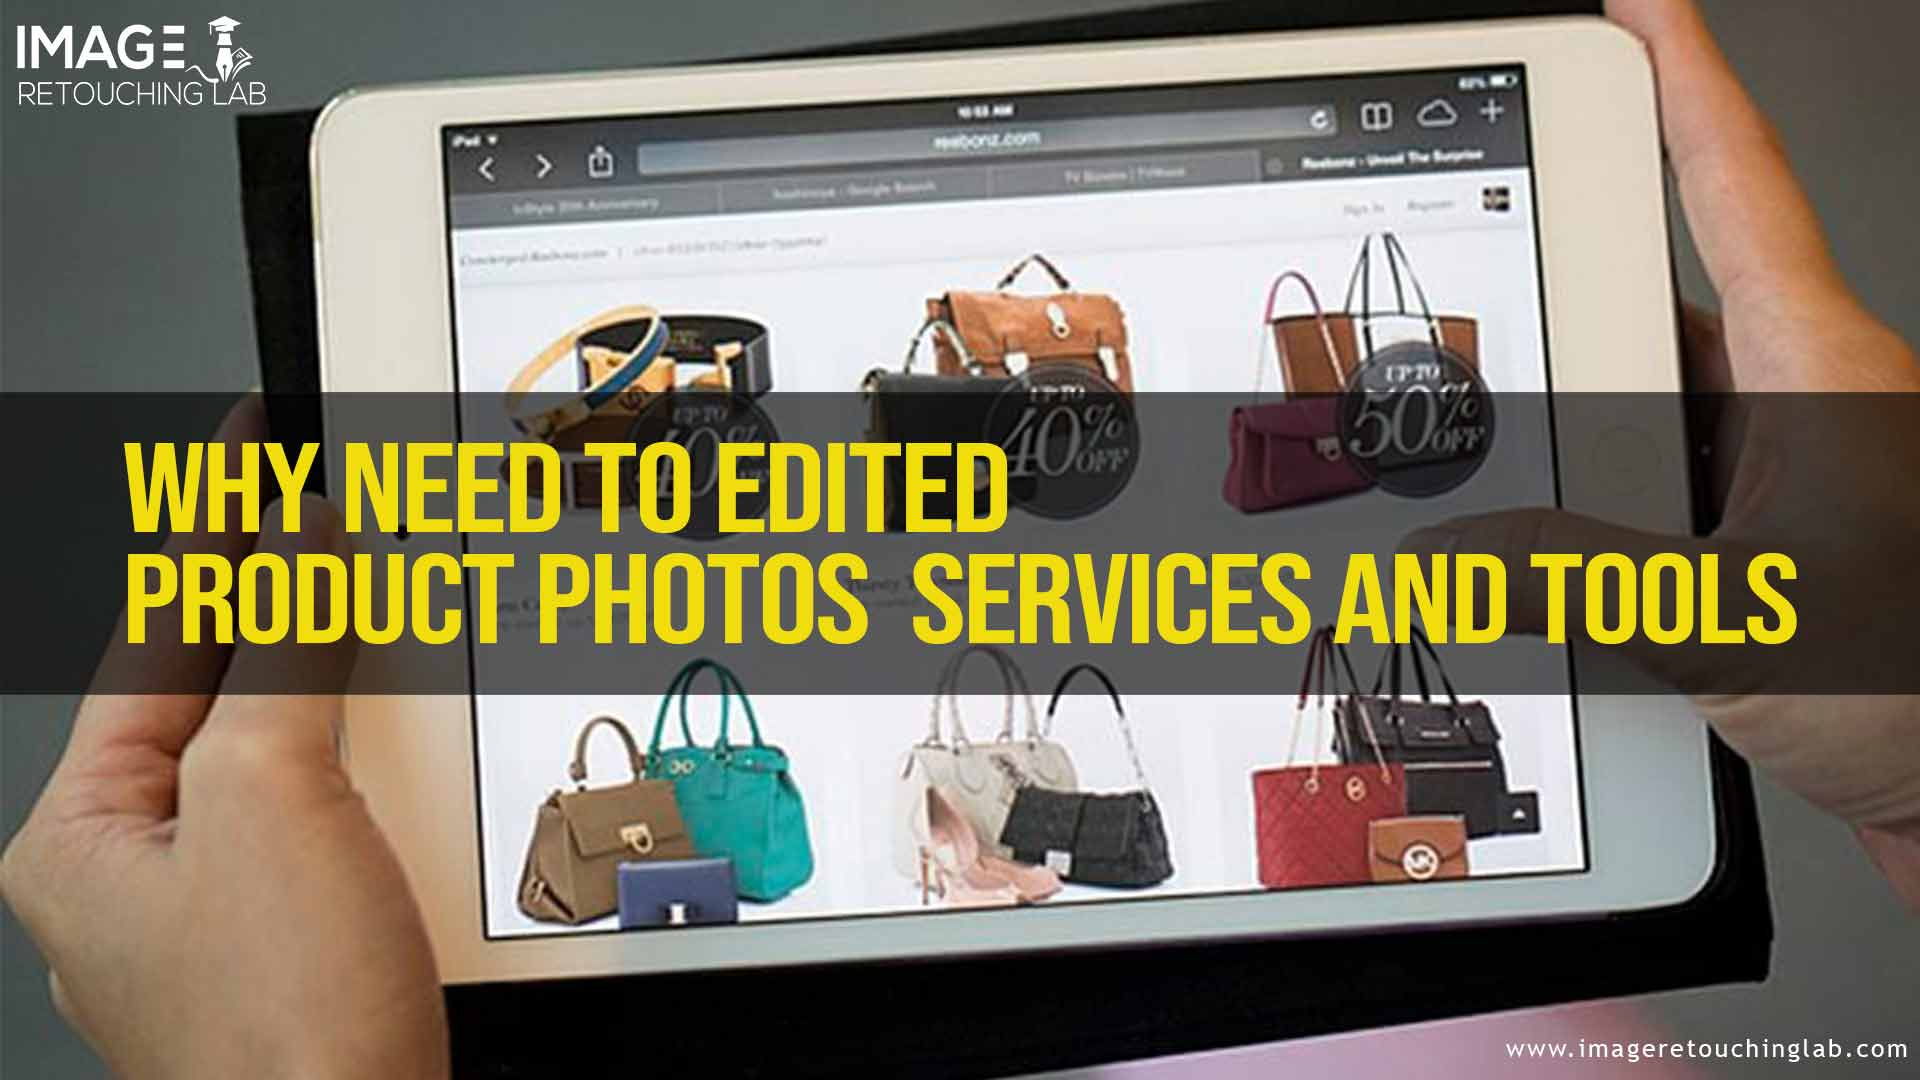 Why Needs To Edited Product Photos services and Tools